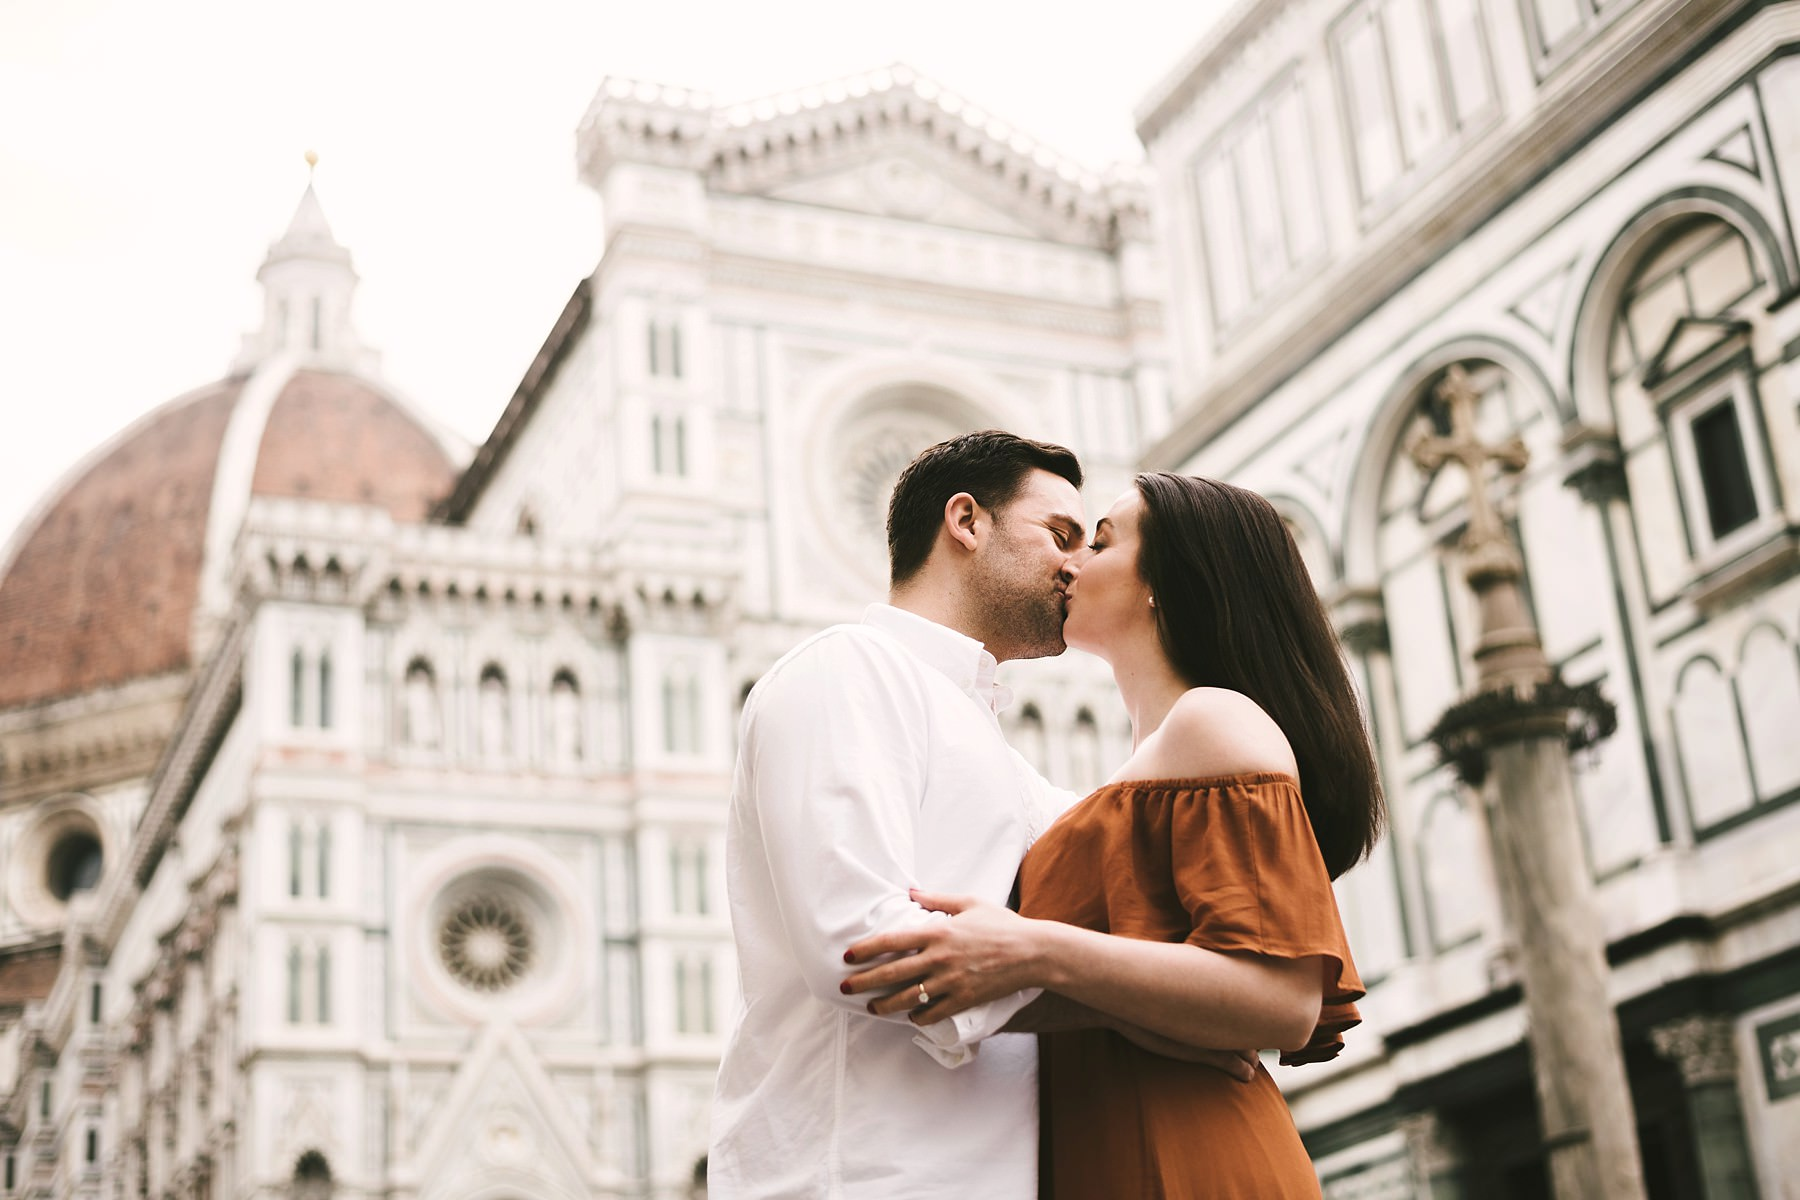 Unforgettable couple portrait photo shoot in Florence near the Duomo at sunrise time